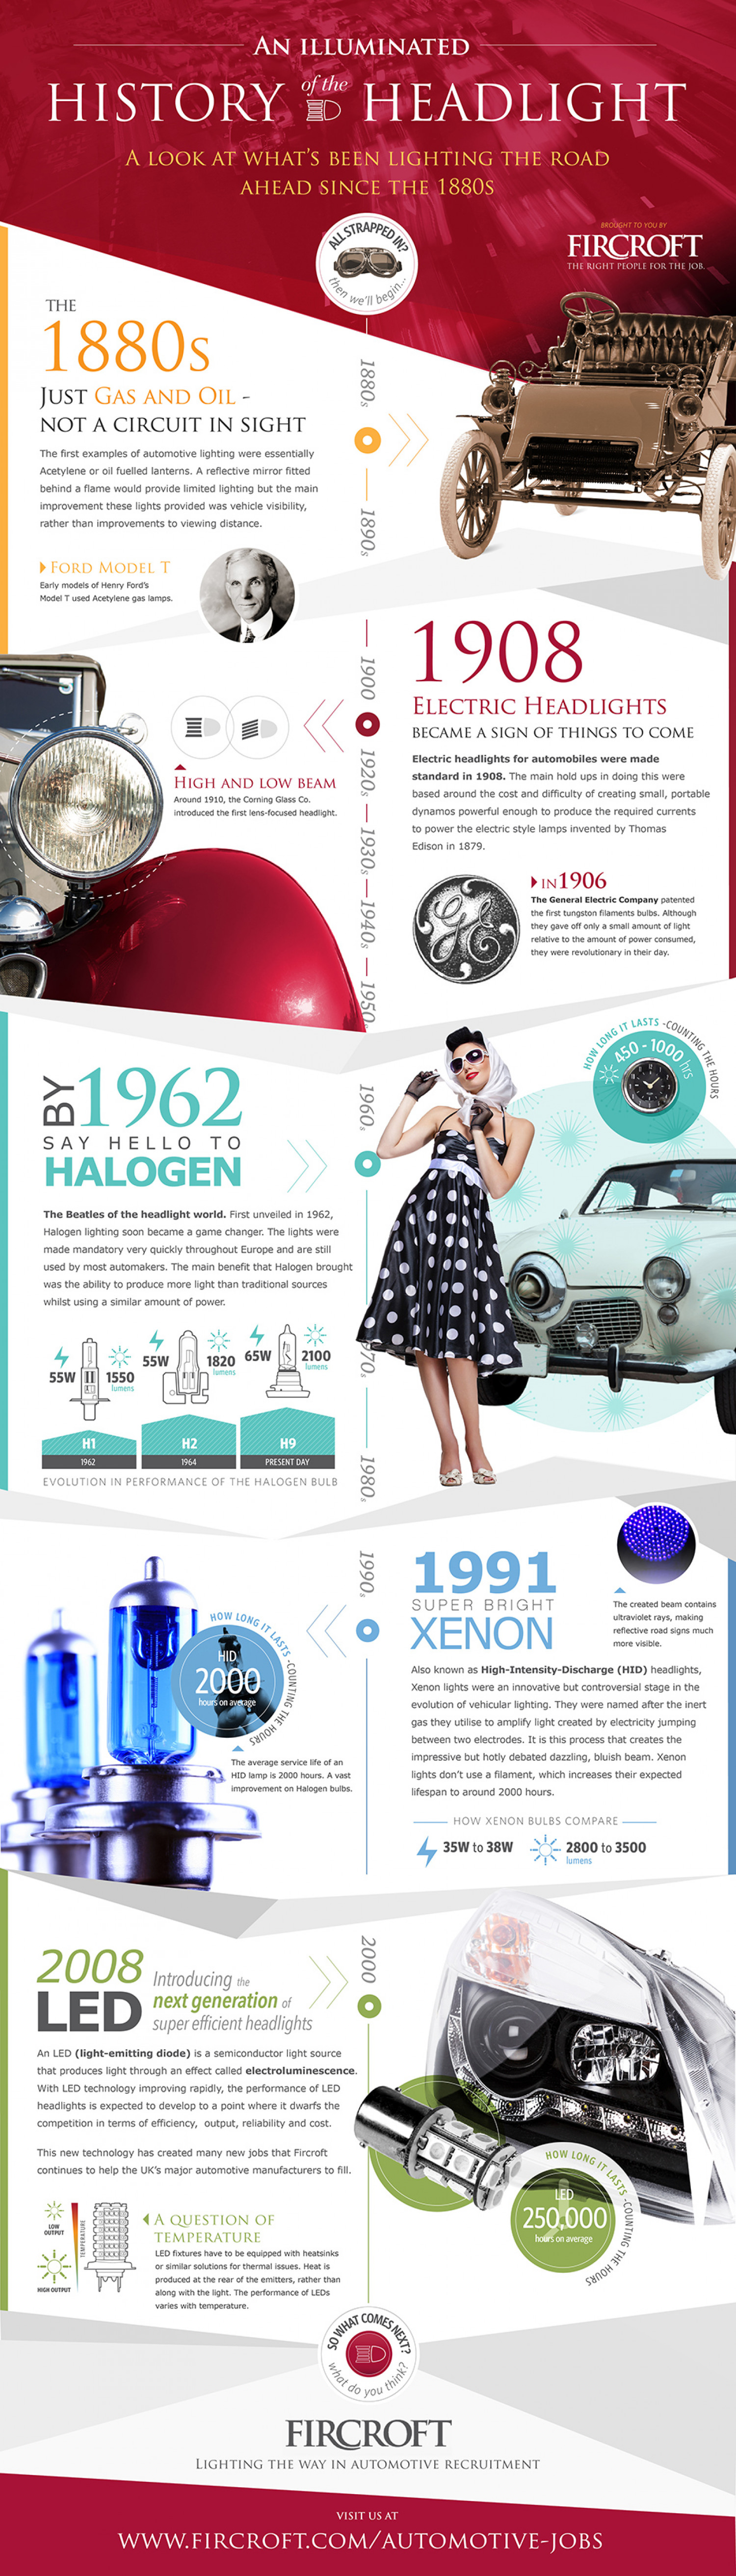 An Illuminated History of the Headlight Infographic